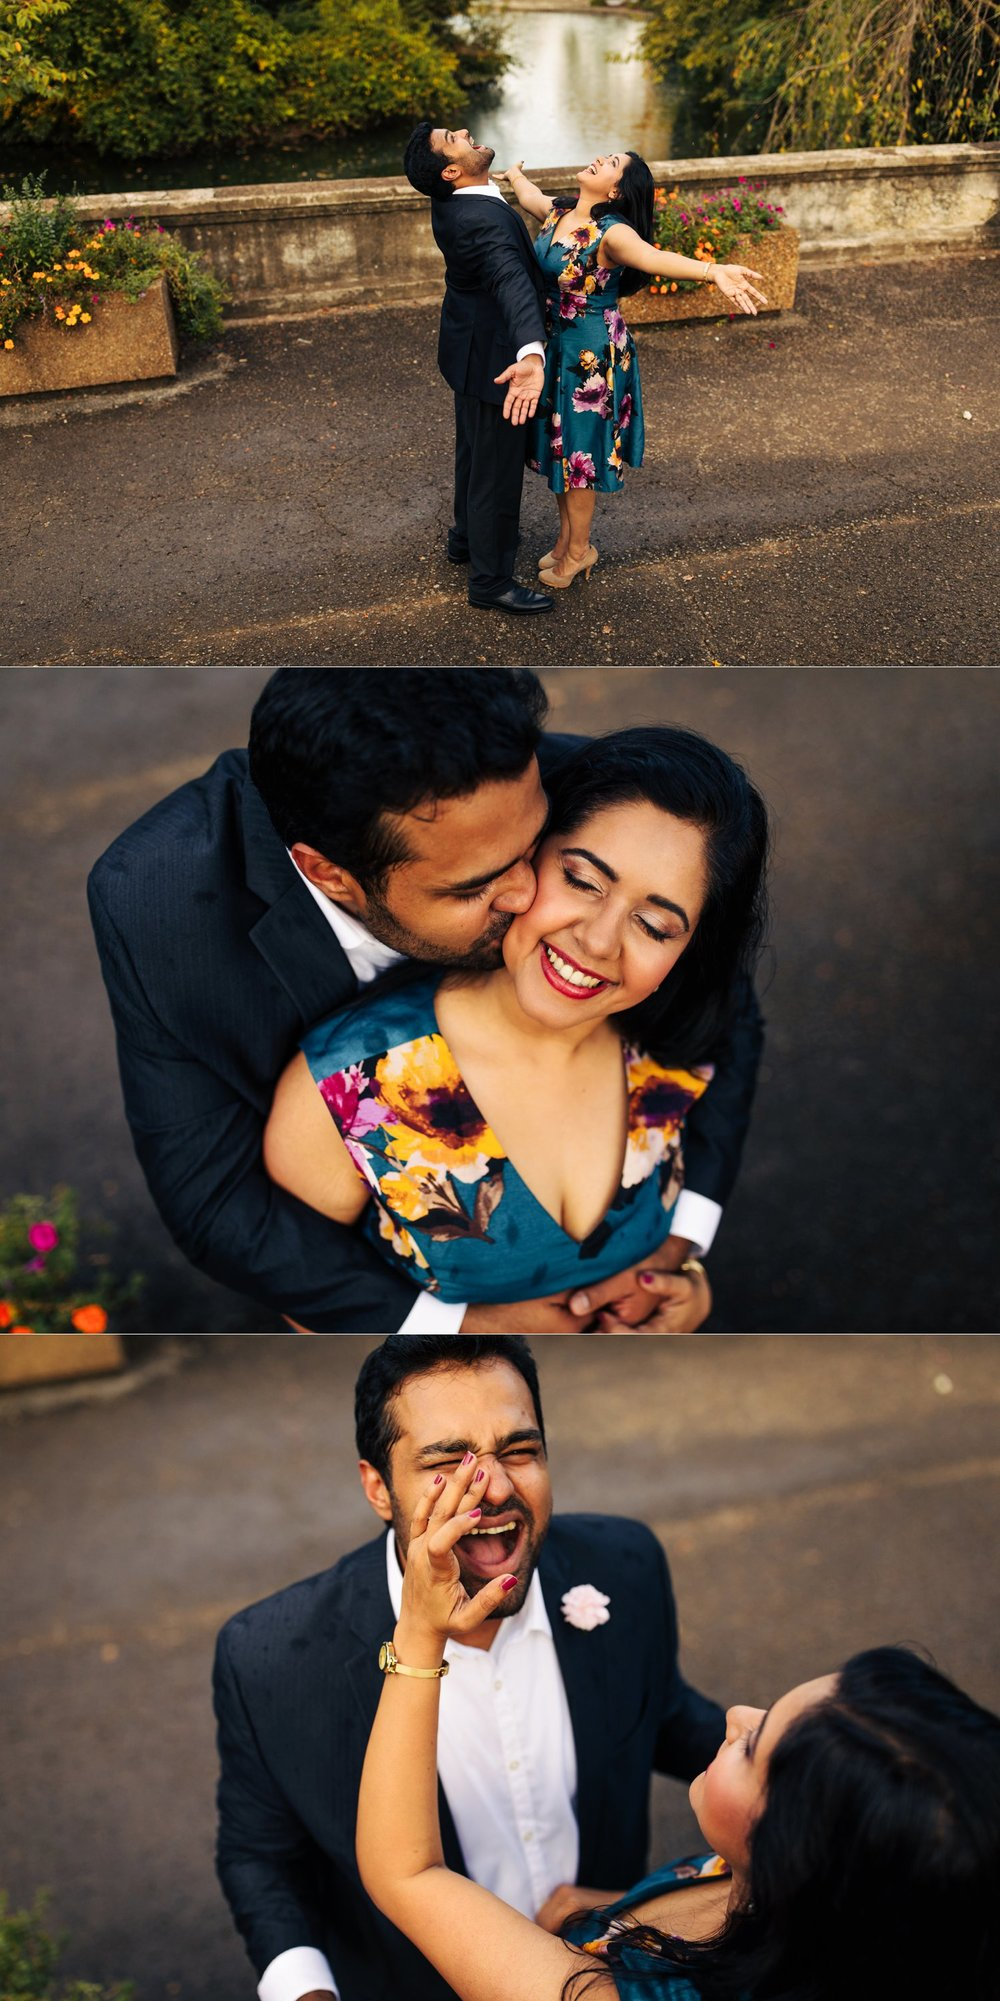 CK-Photo-t-r-engagement_0005.jpg